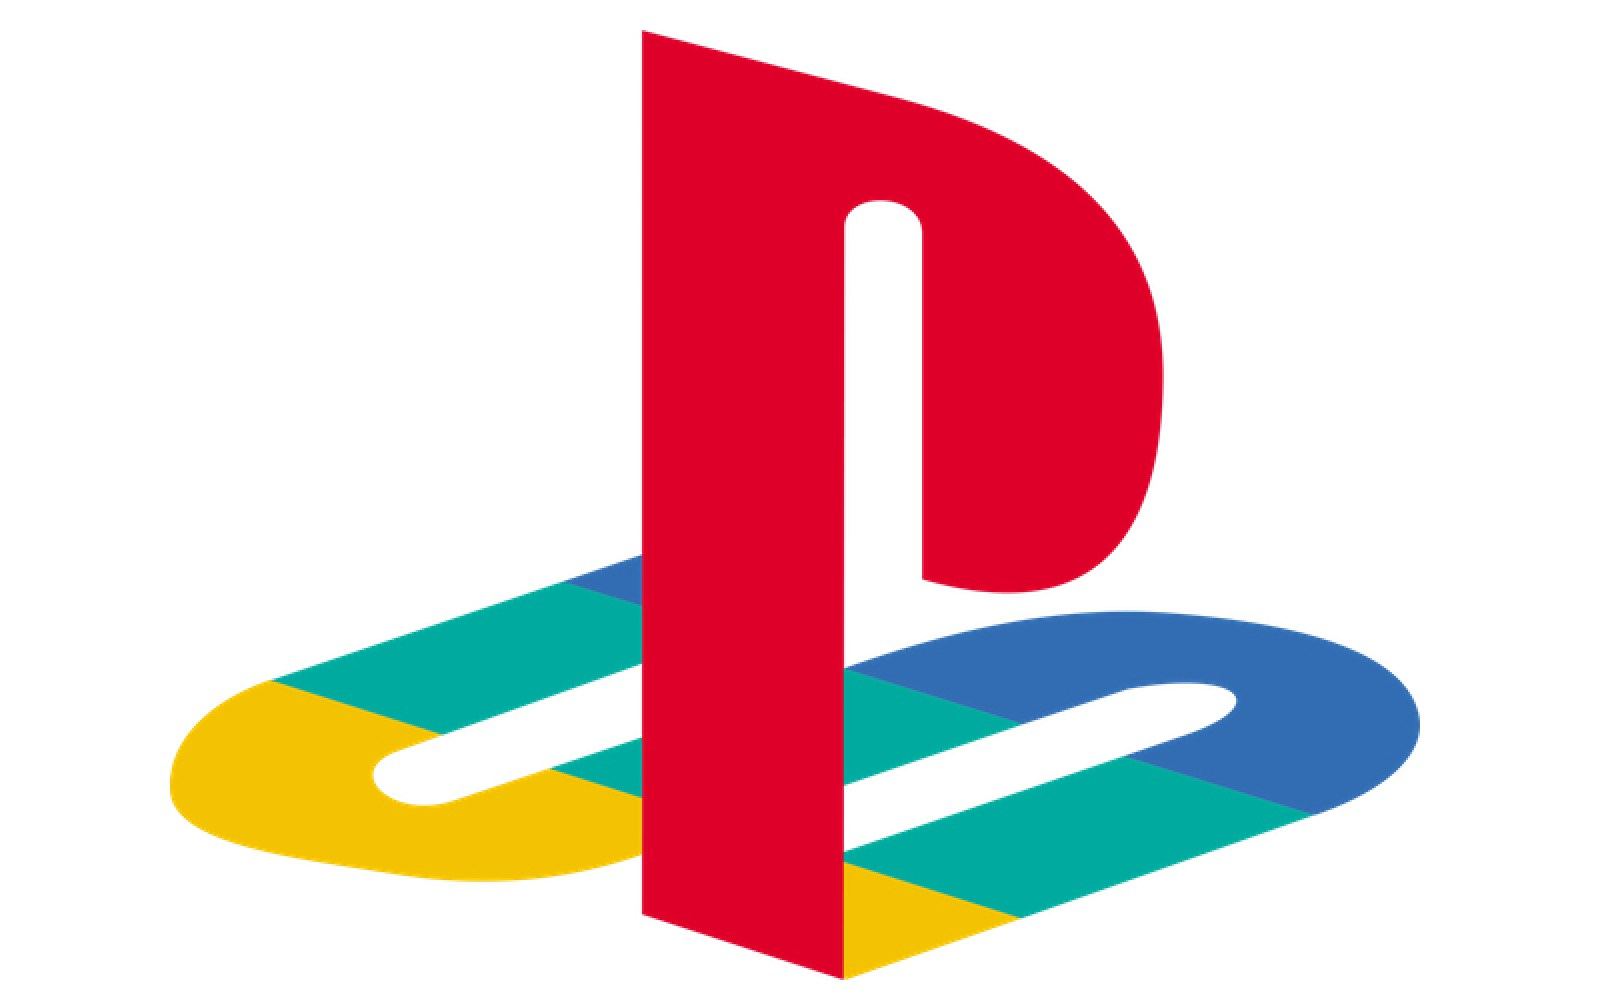 Sony forms ForwardWorks corporation to bring its PlayStation games to mobile